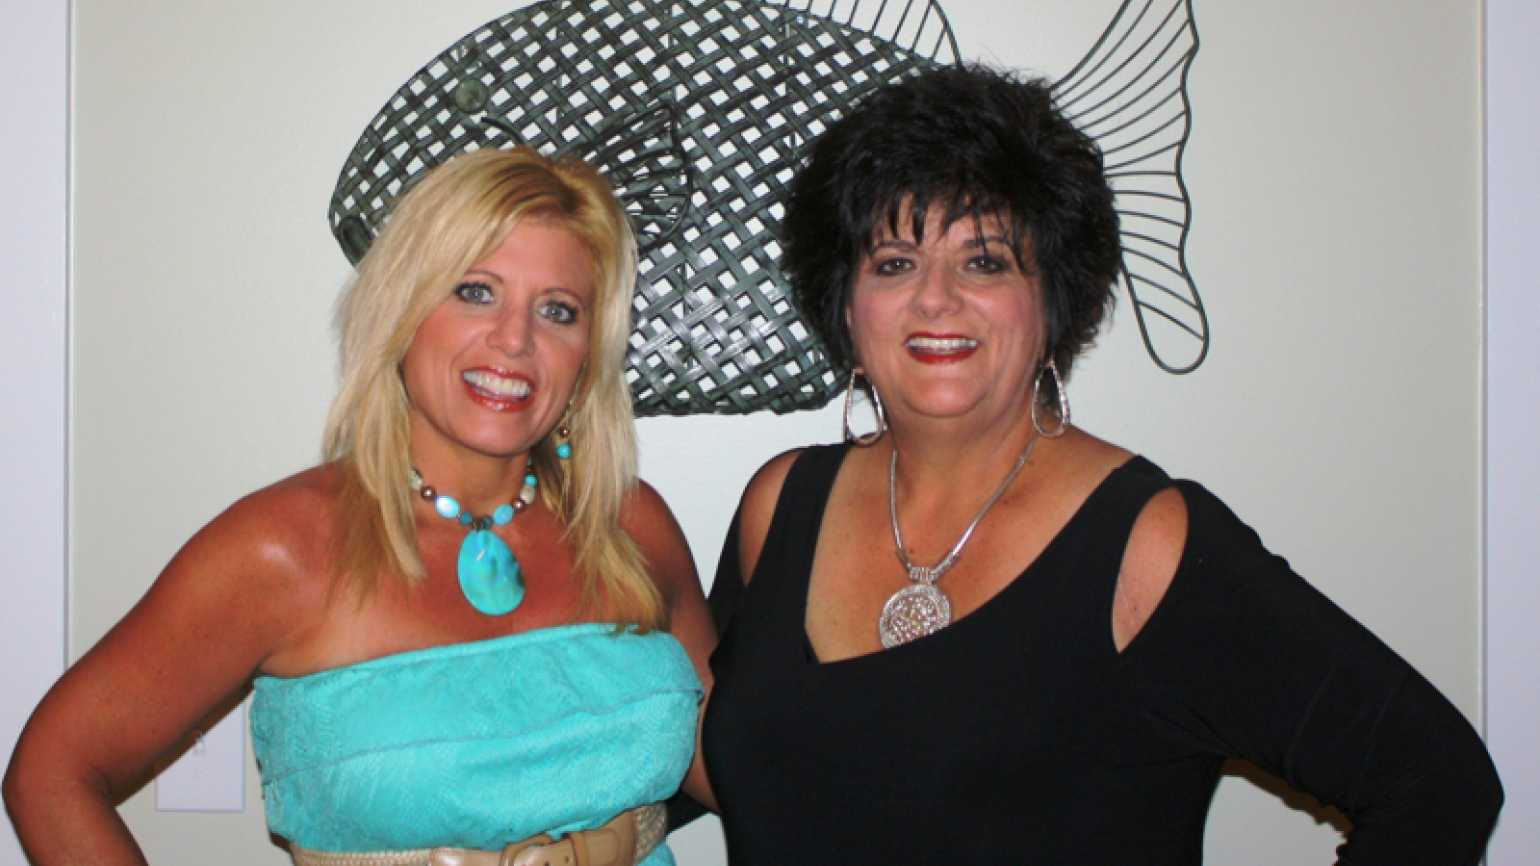 Inspirational Stories blogger Michelle Medlock Adams and her sister, Martie